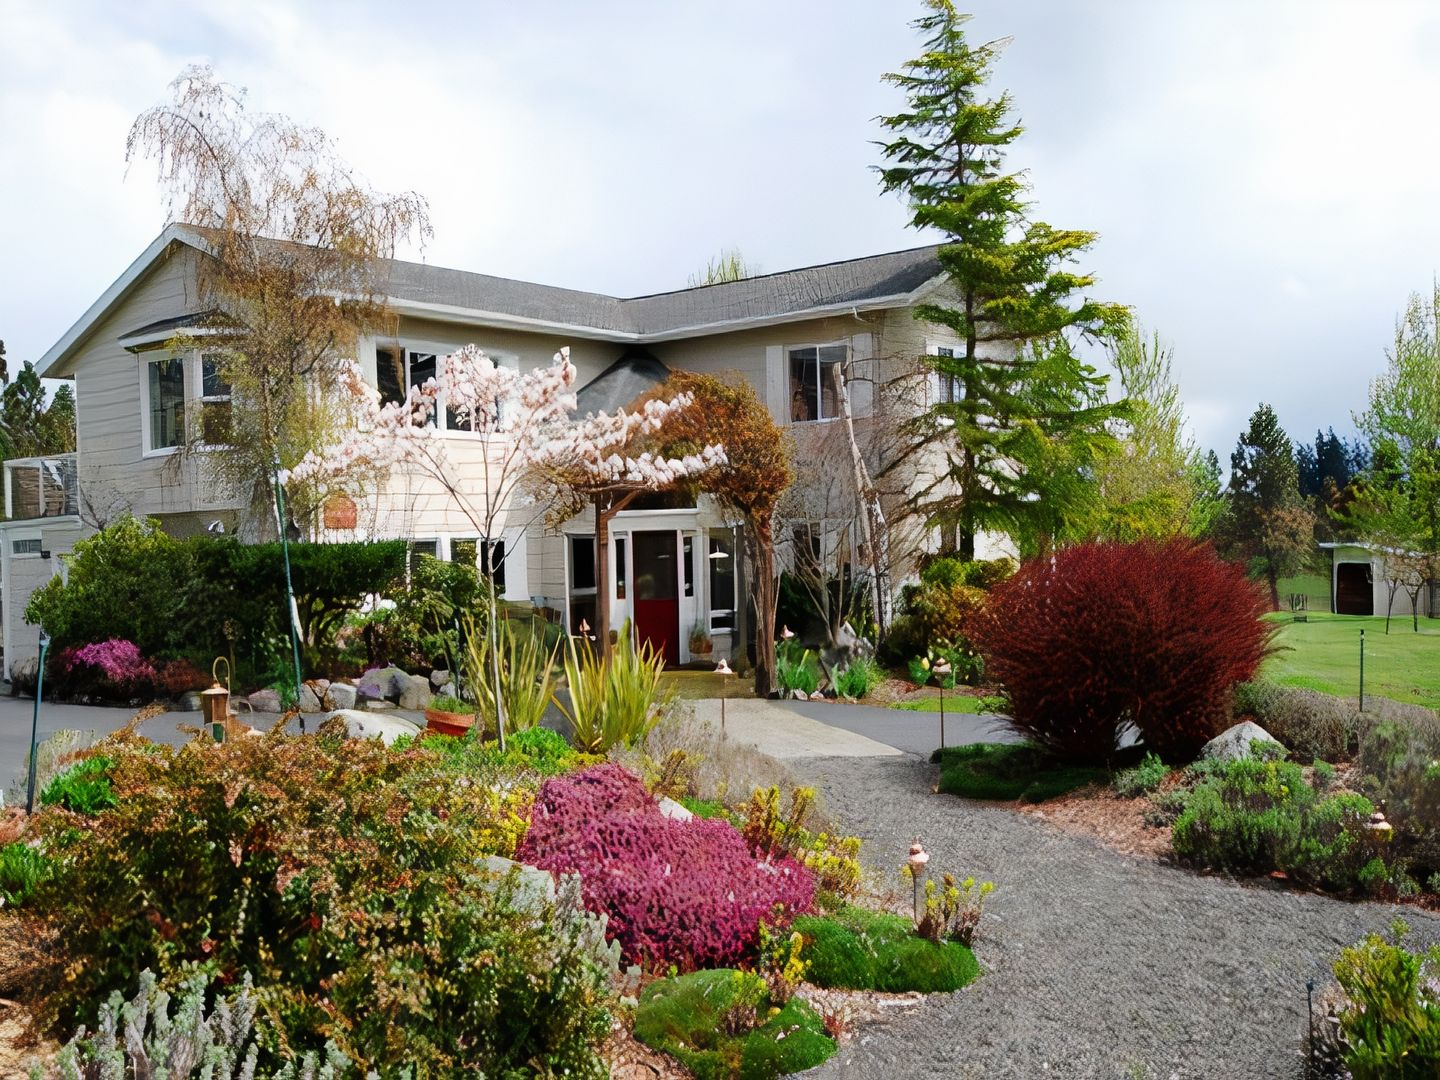 A close up of a flower garden in front of a house at Trumpeter Inn.